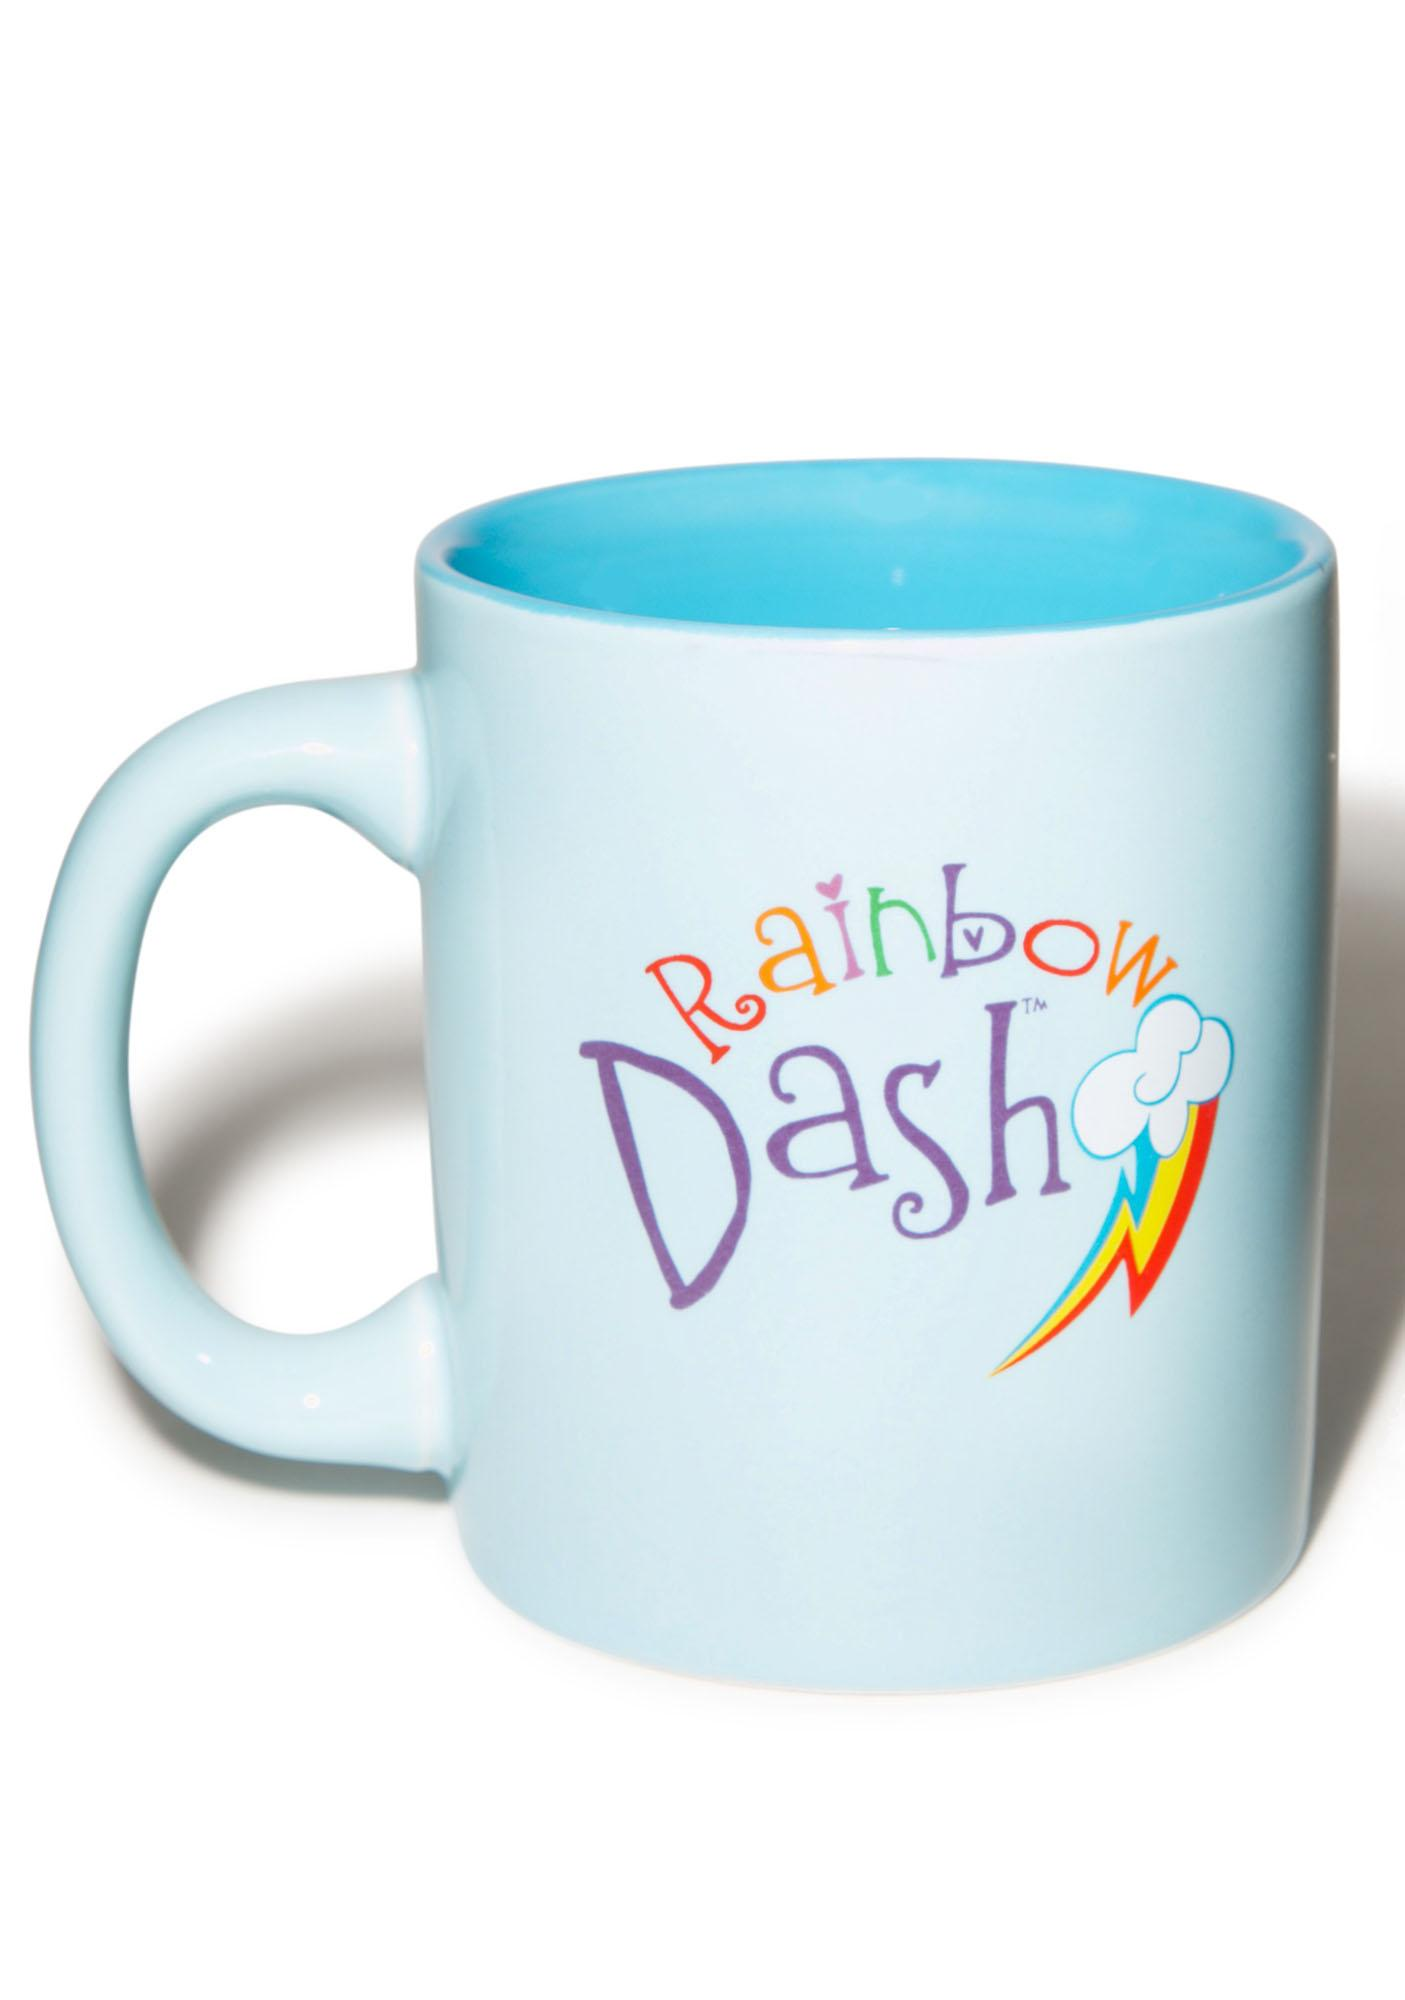 Rainbow Dash Ceramic Mug